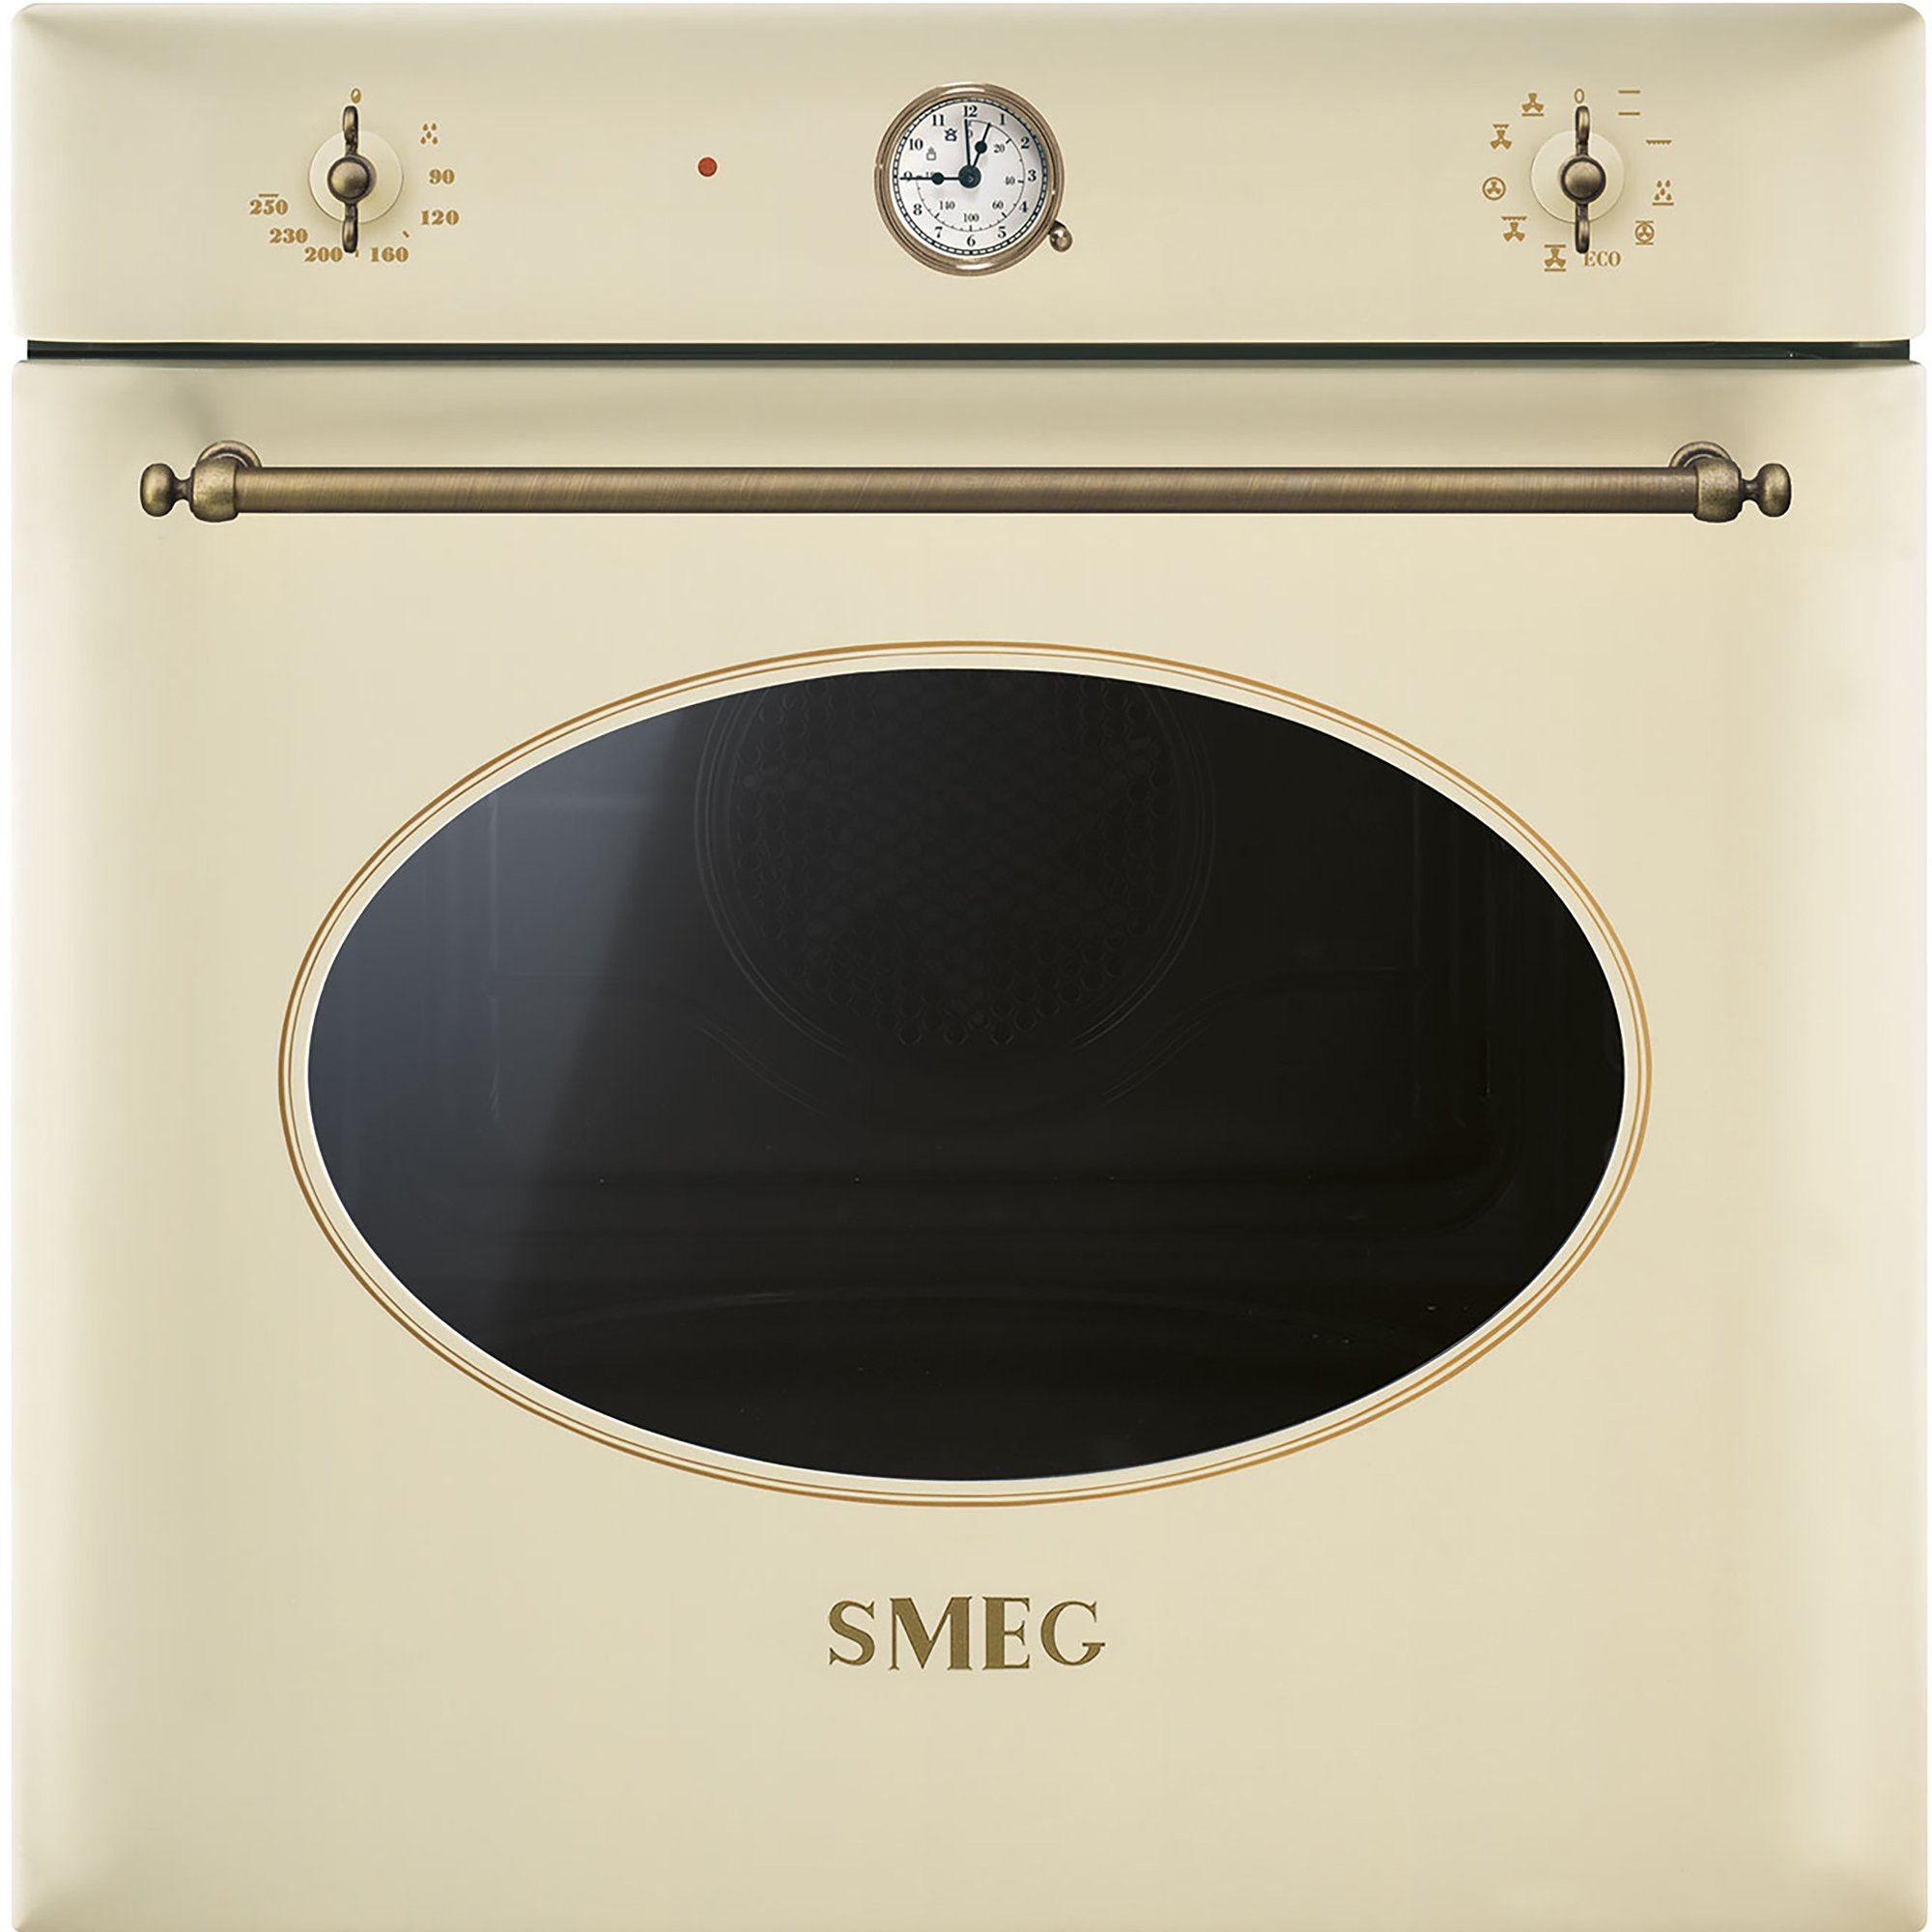 Smeg 60 cm Colonial Multifunktionsugn Creme/Antik Mässing